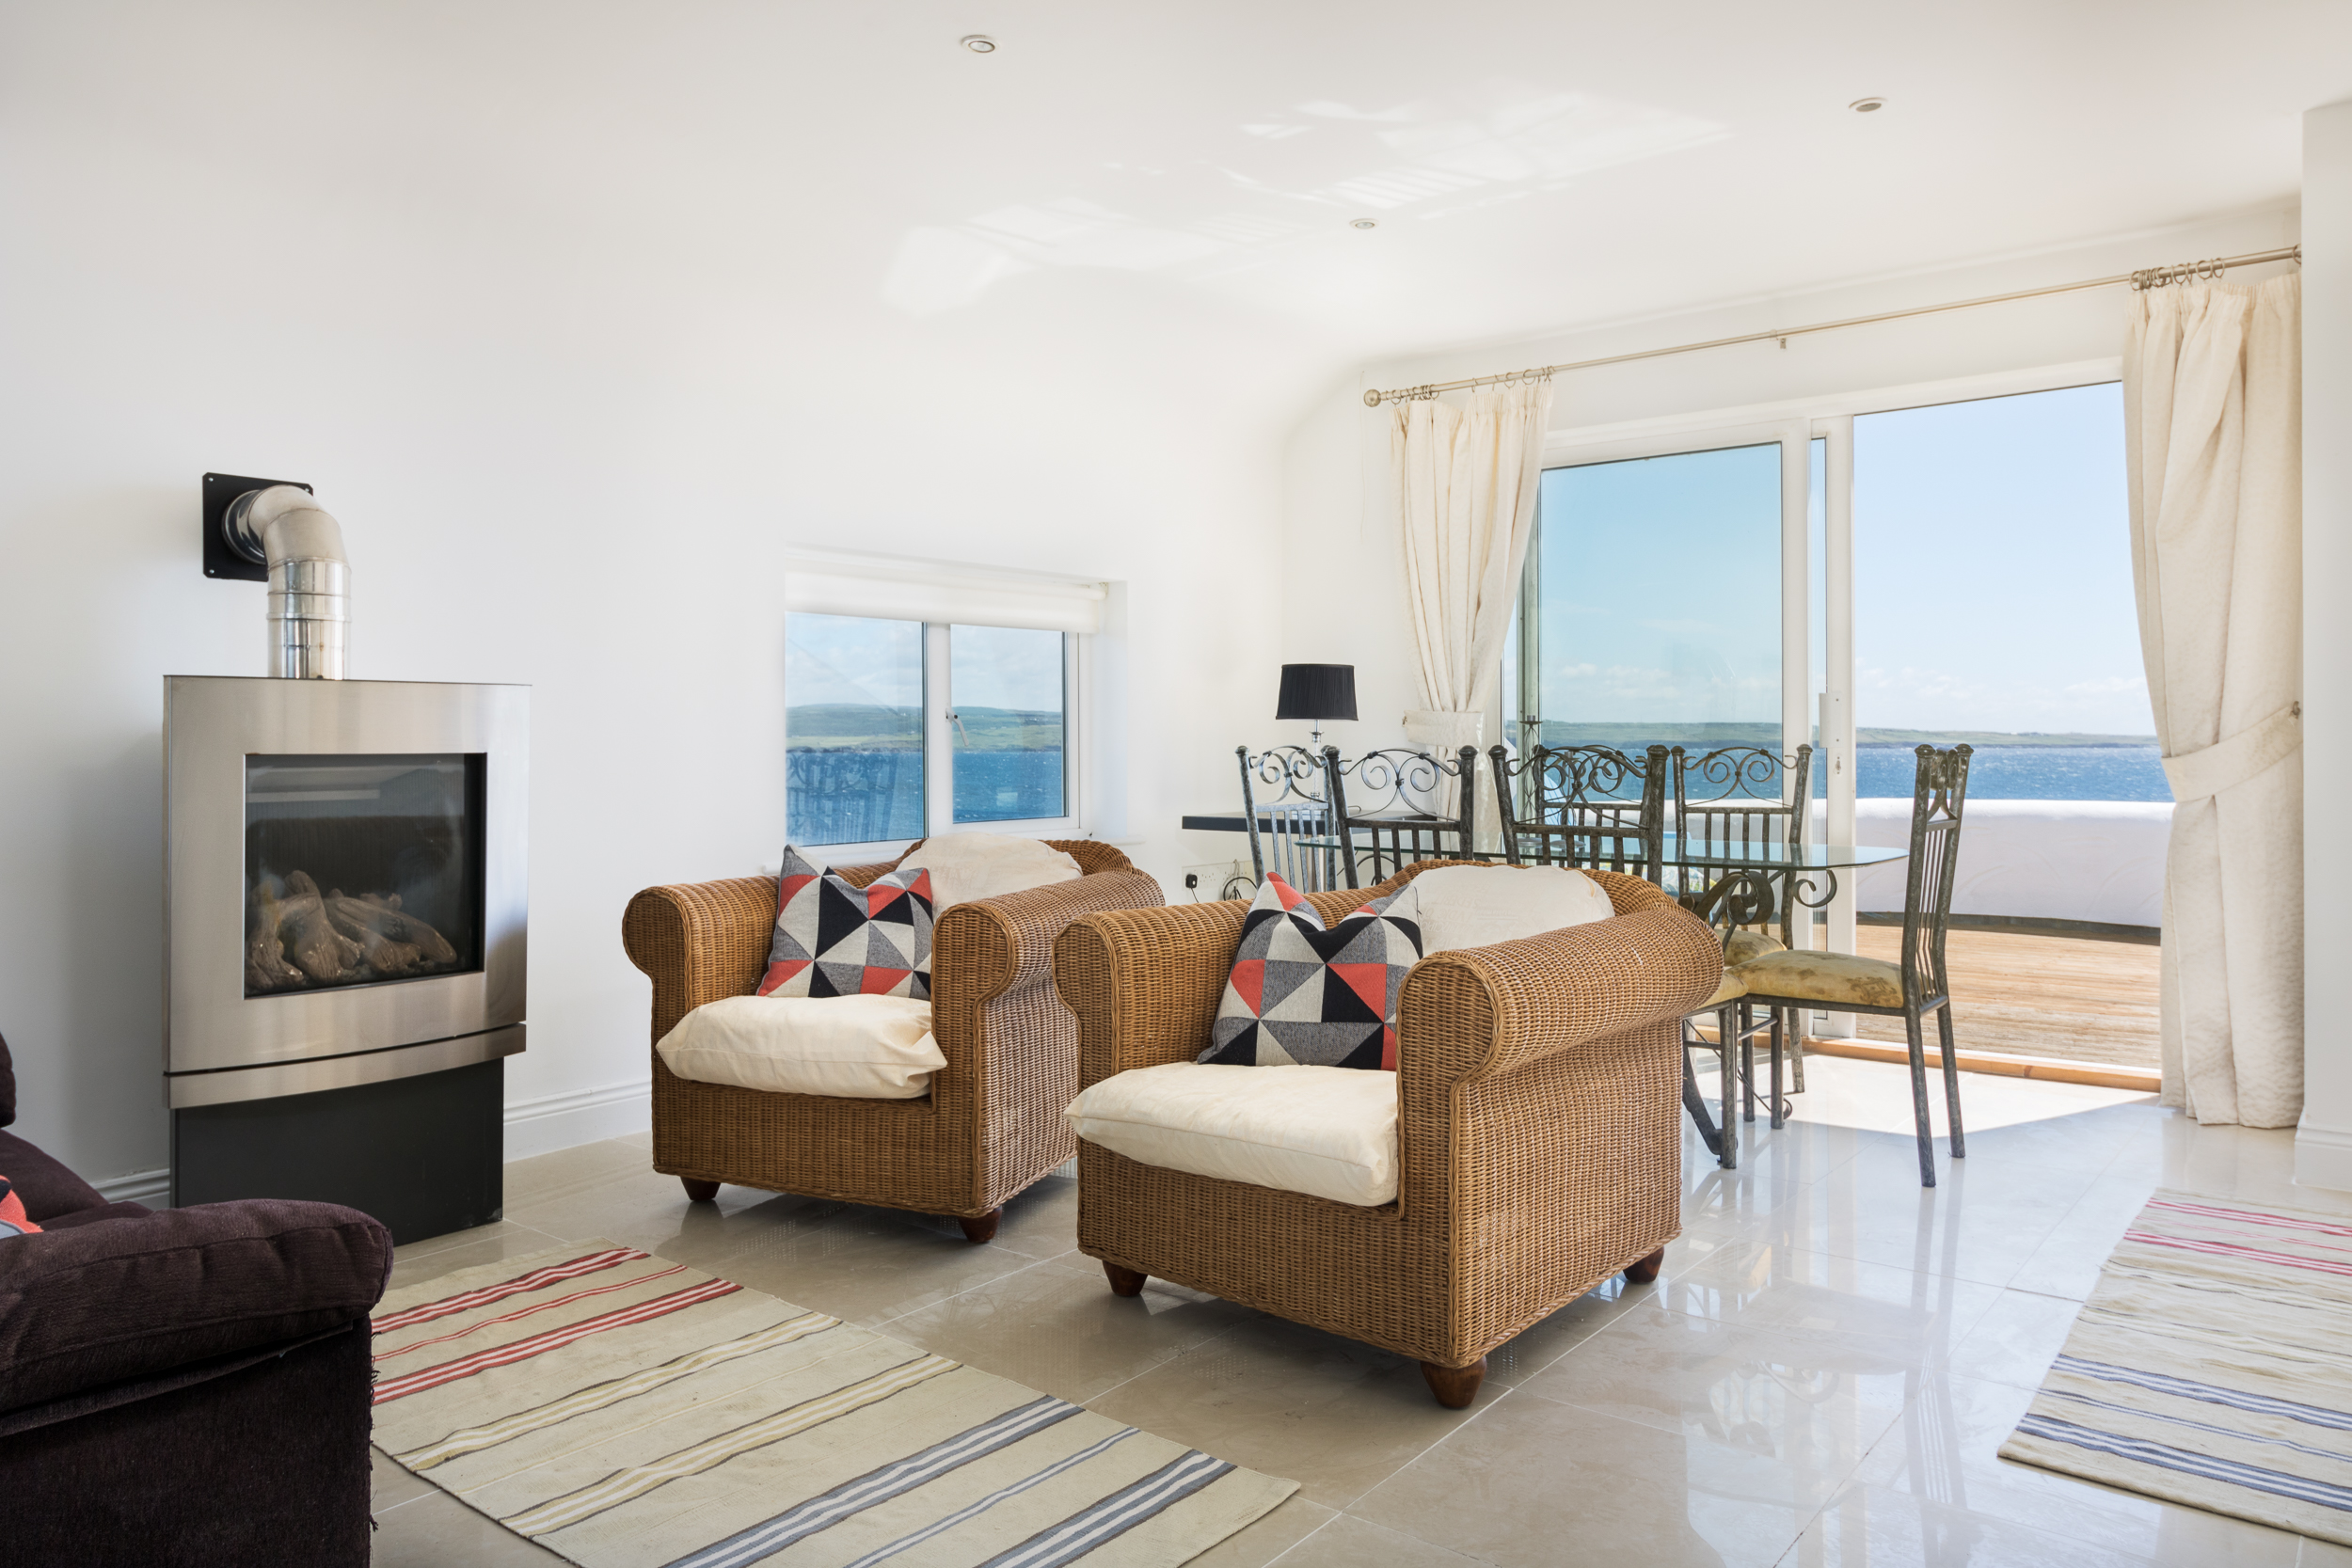 Apartment by the sea.jpg